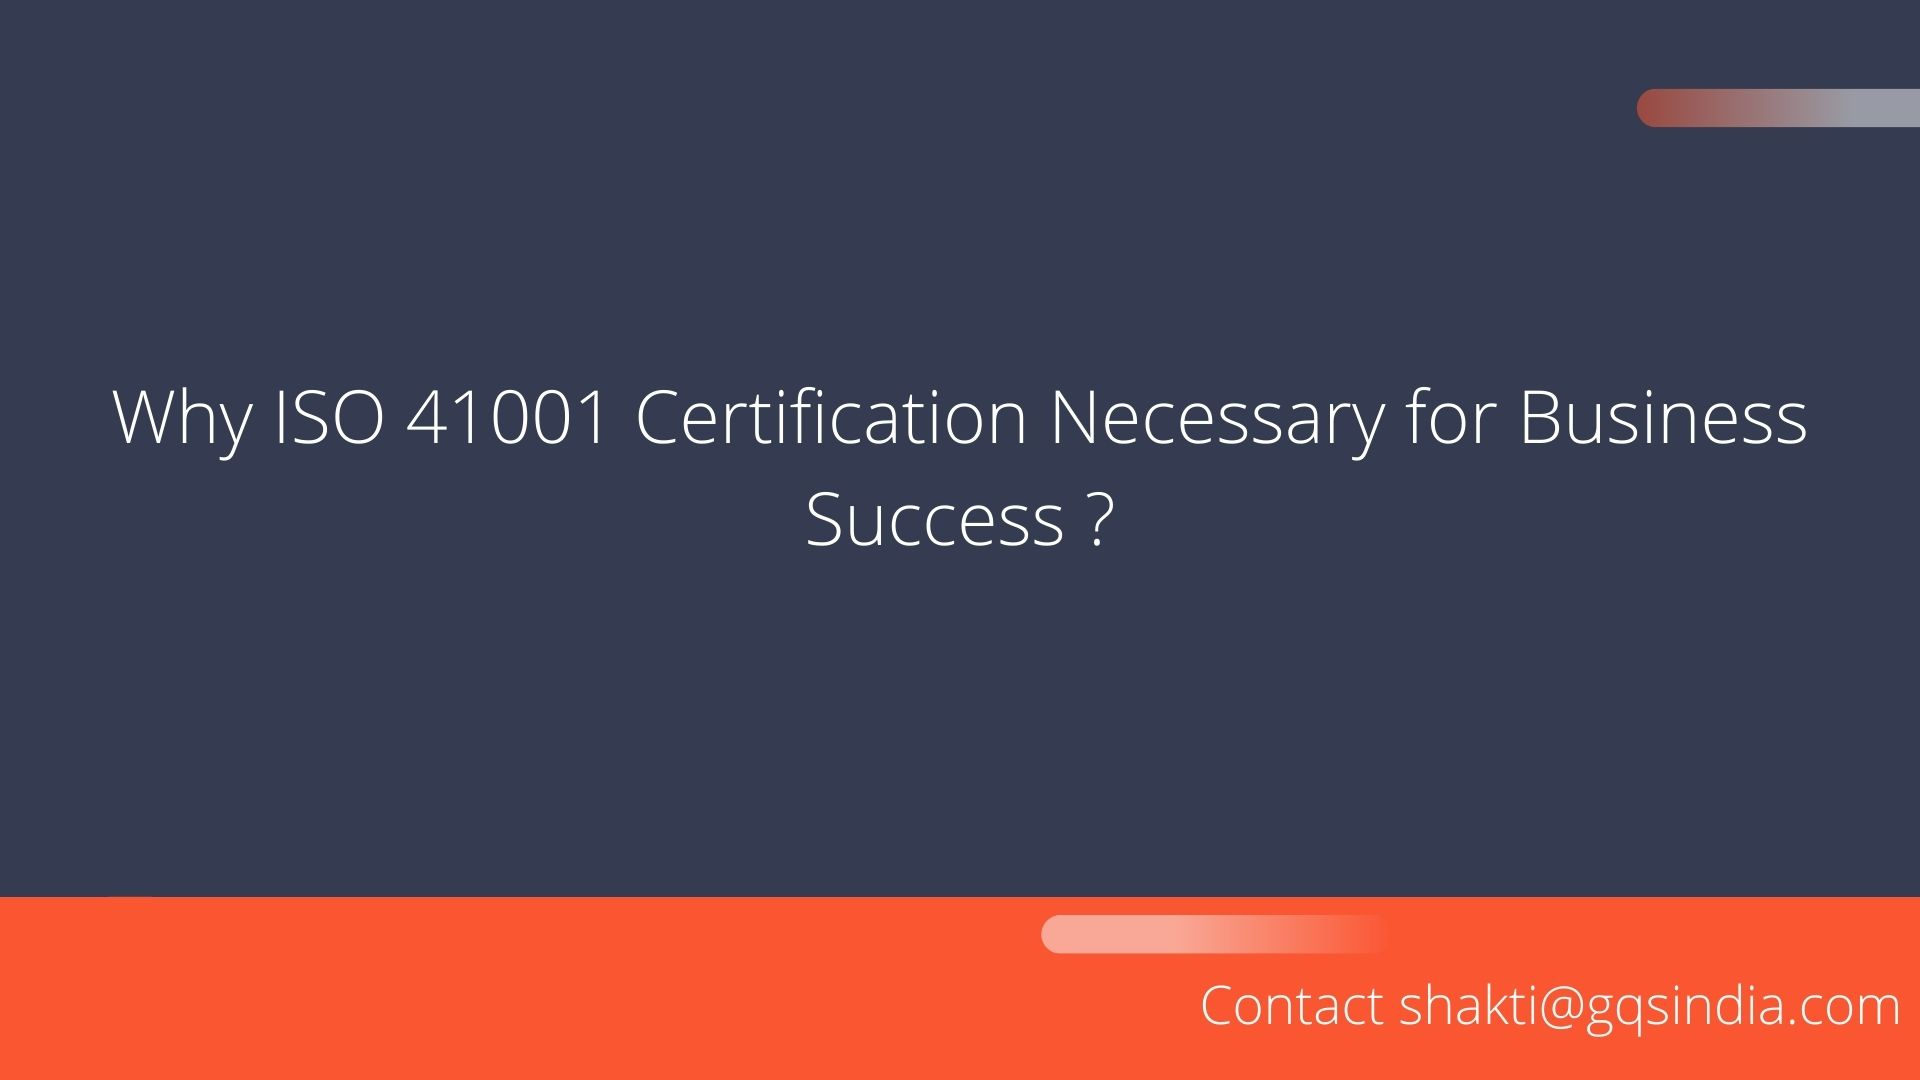 NEED FOR ISO 41001